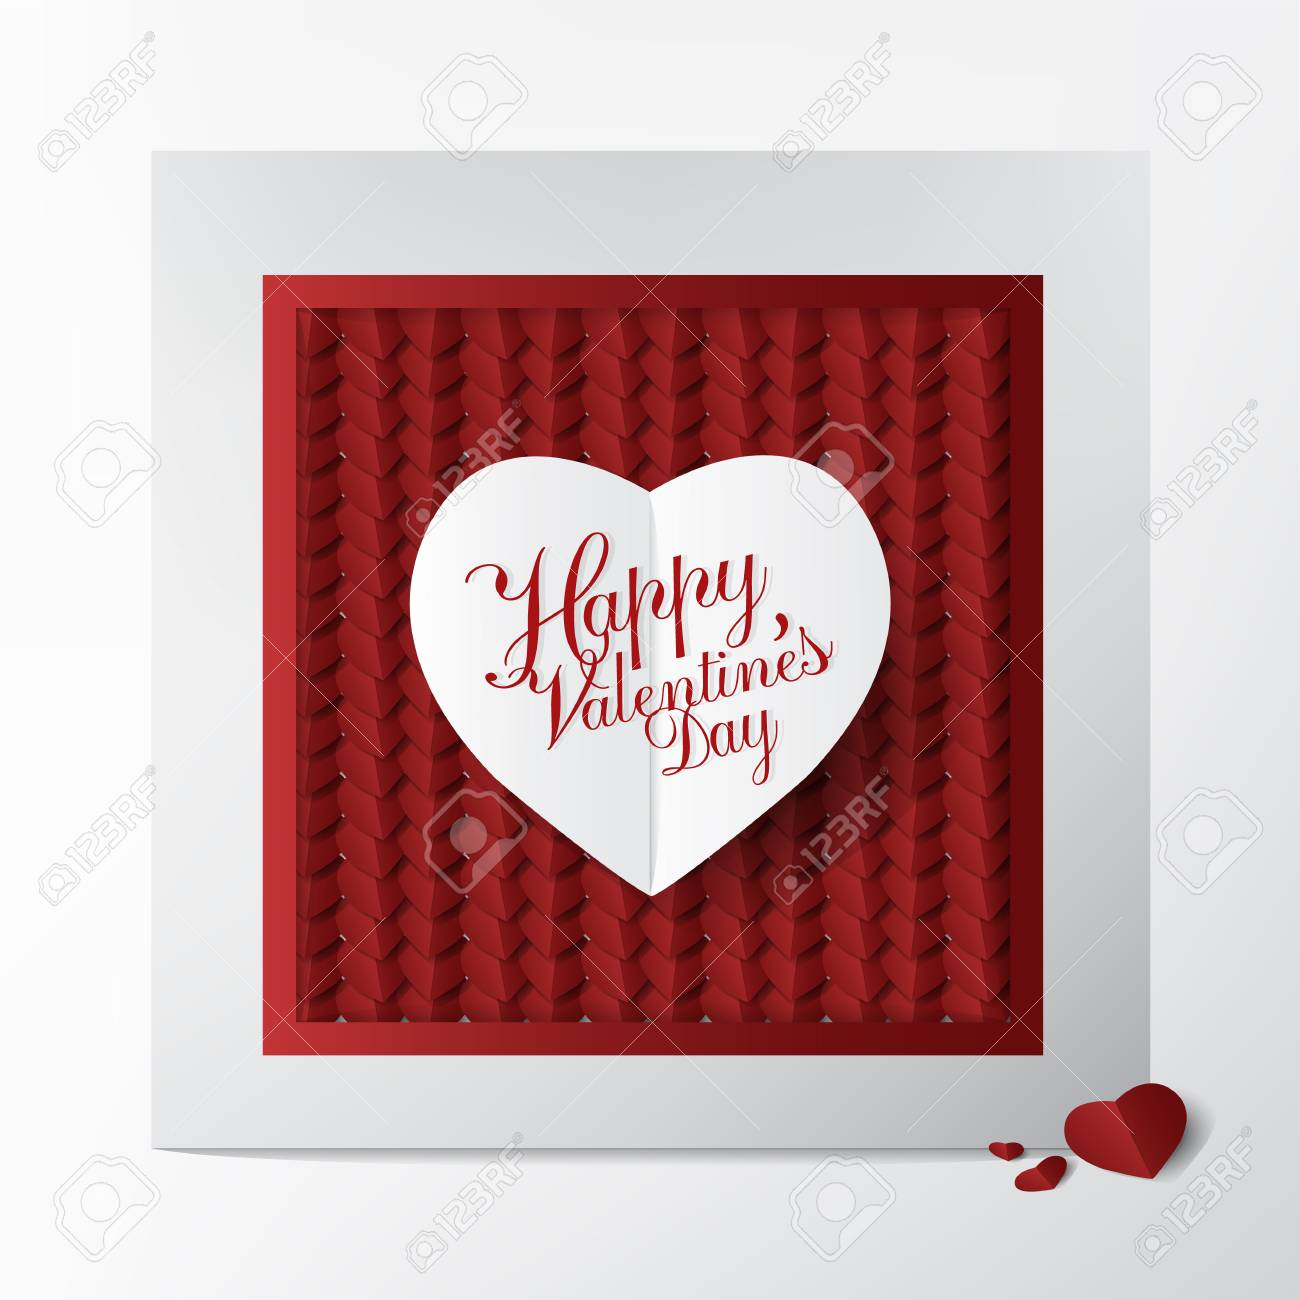 Modern Classic Greeting Card With Happy Valentines Day Typography Royalty Free Cliparts Vectors And Stock Illustration Image 94118494